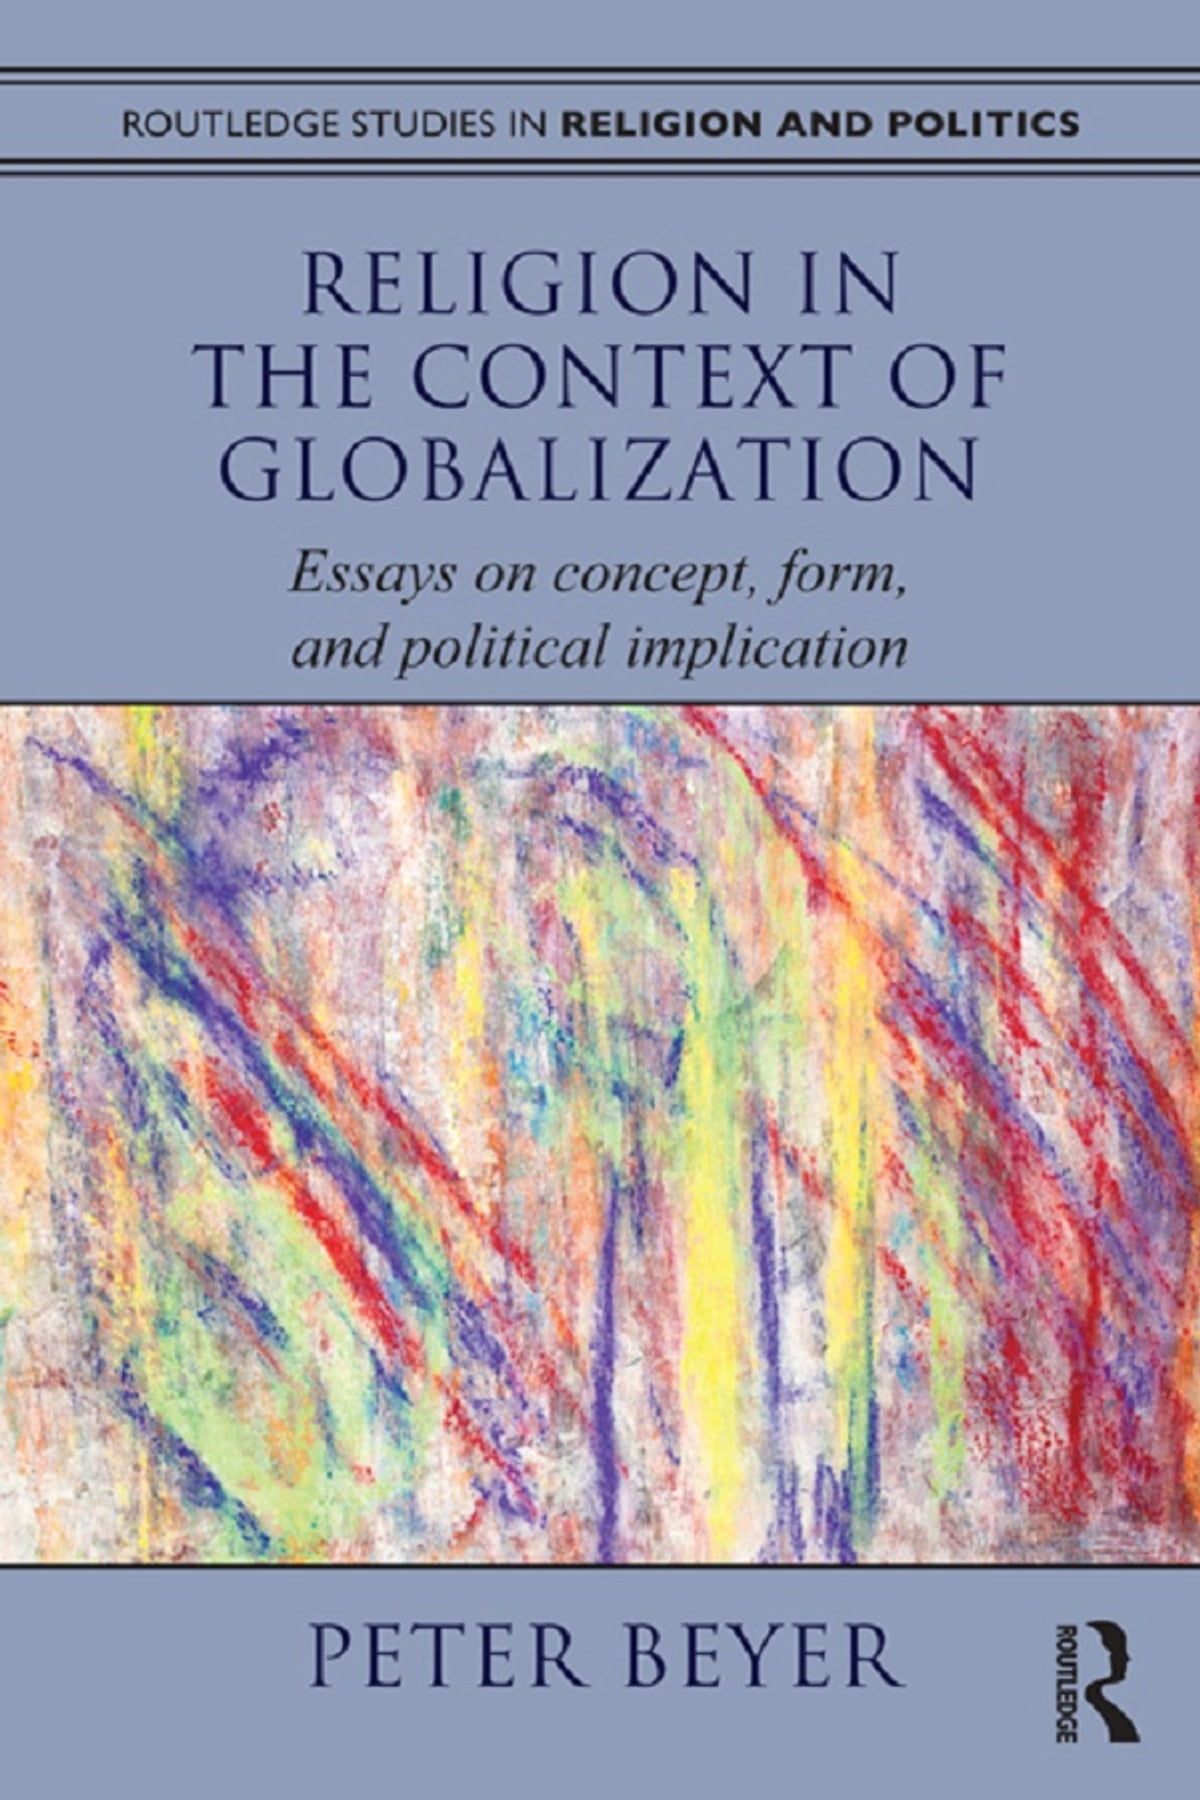 Topics For Proposal Essays Religion In The Context Of Globalization Ebook By Peter Beyer     Rakuten Kobo Essay Paper also Essay Writing Scholarships For High School Students Religion In The Context Of Globalization Ebook By Peter Beyer  Example Essay Thesis